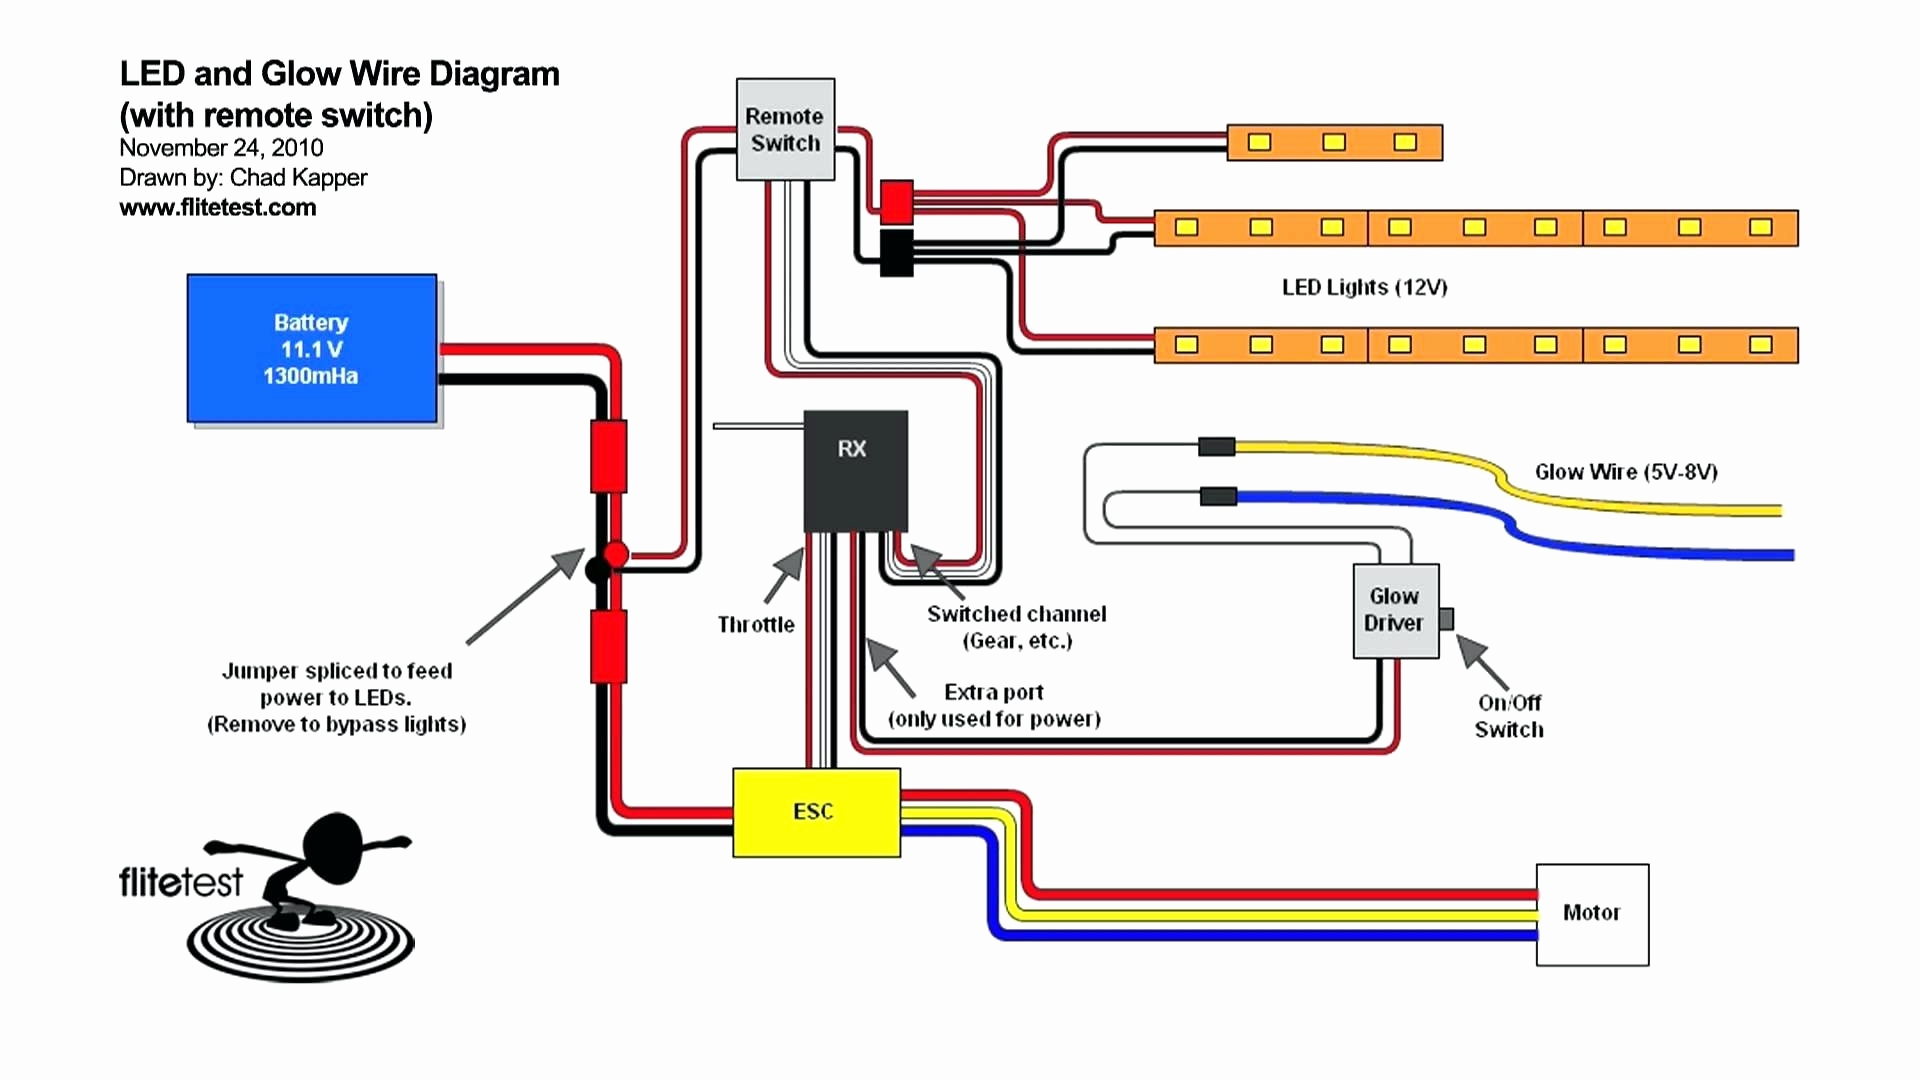 Led Light 12V 3 Wire Wiring Diagram | Wiring Diagram - 3 Wire Led Trailer Light Wiring Diagram